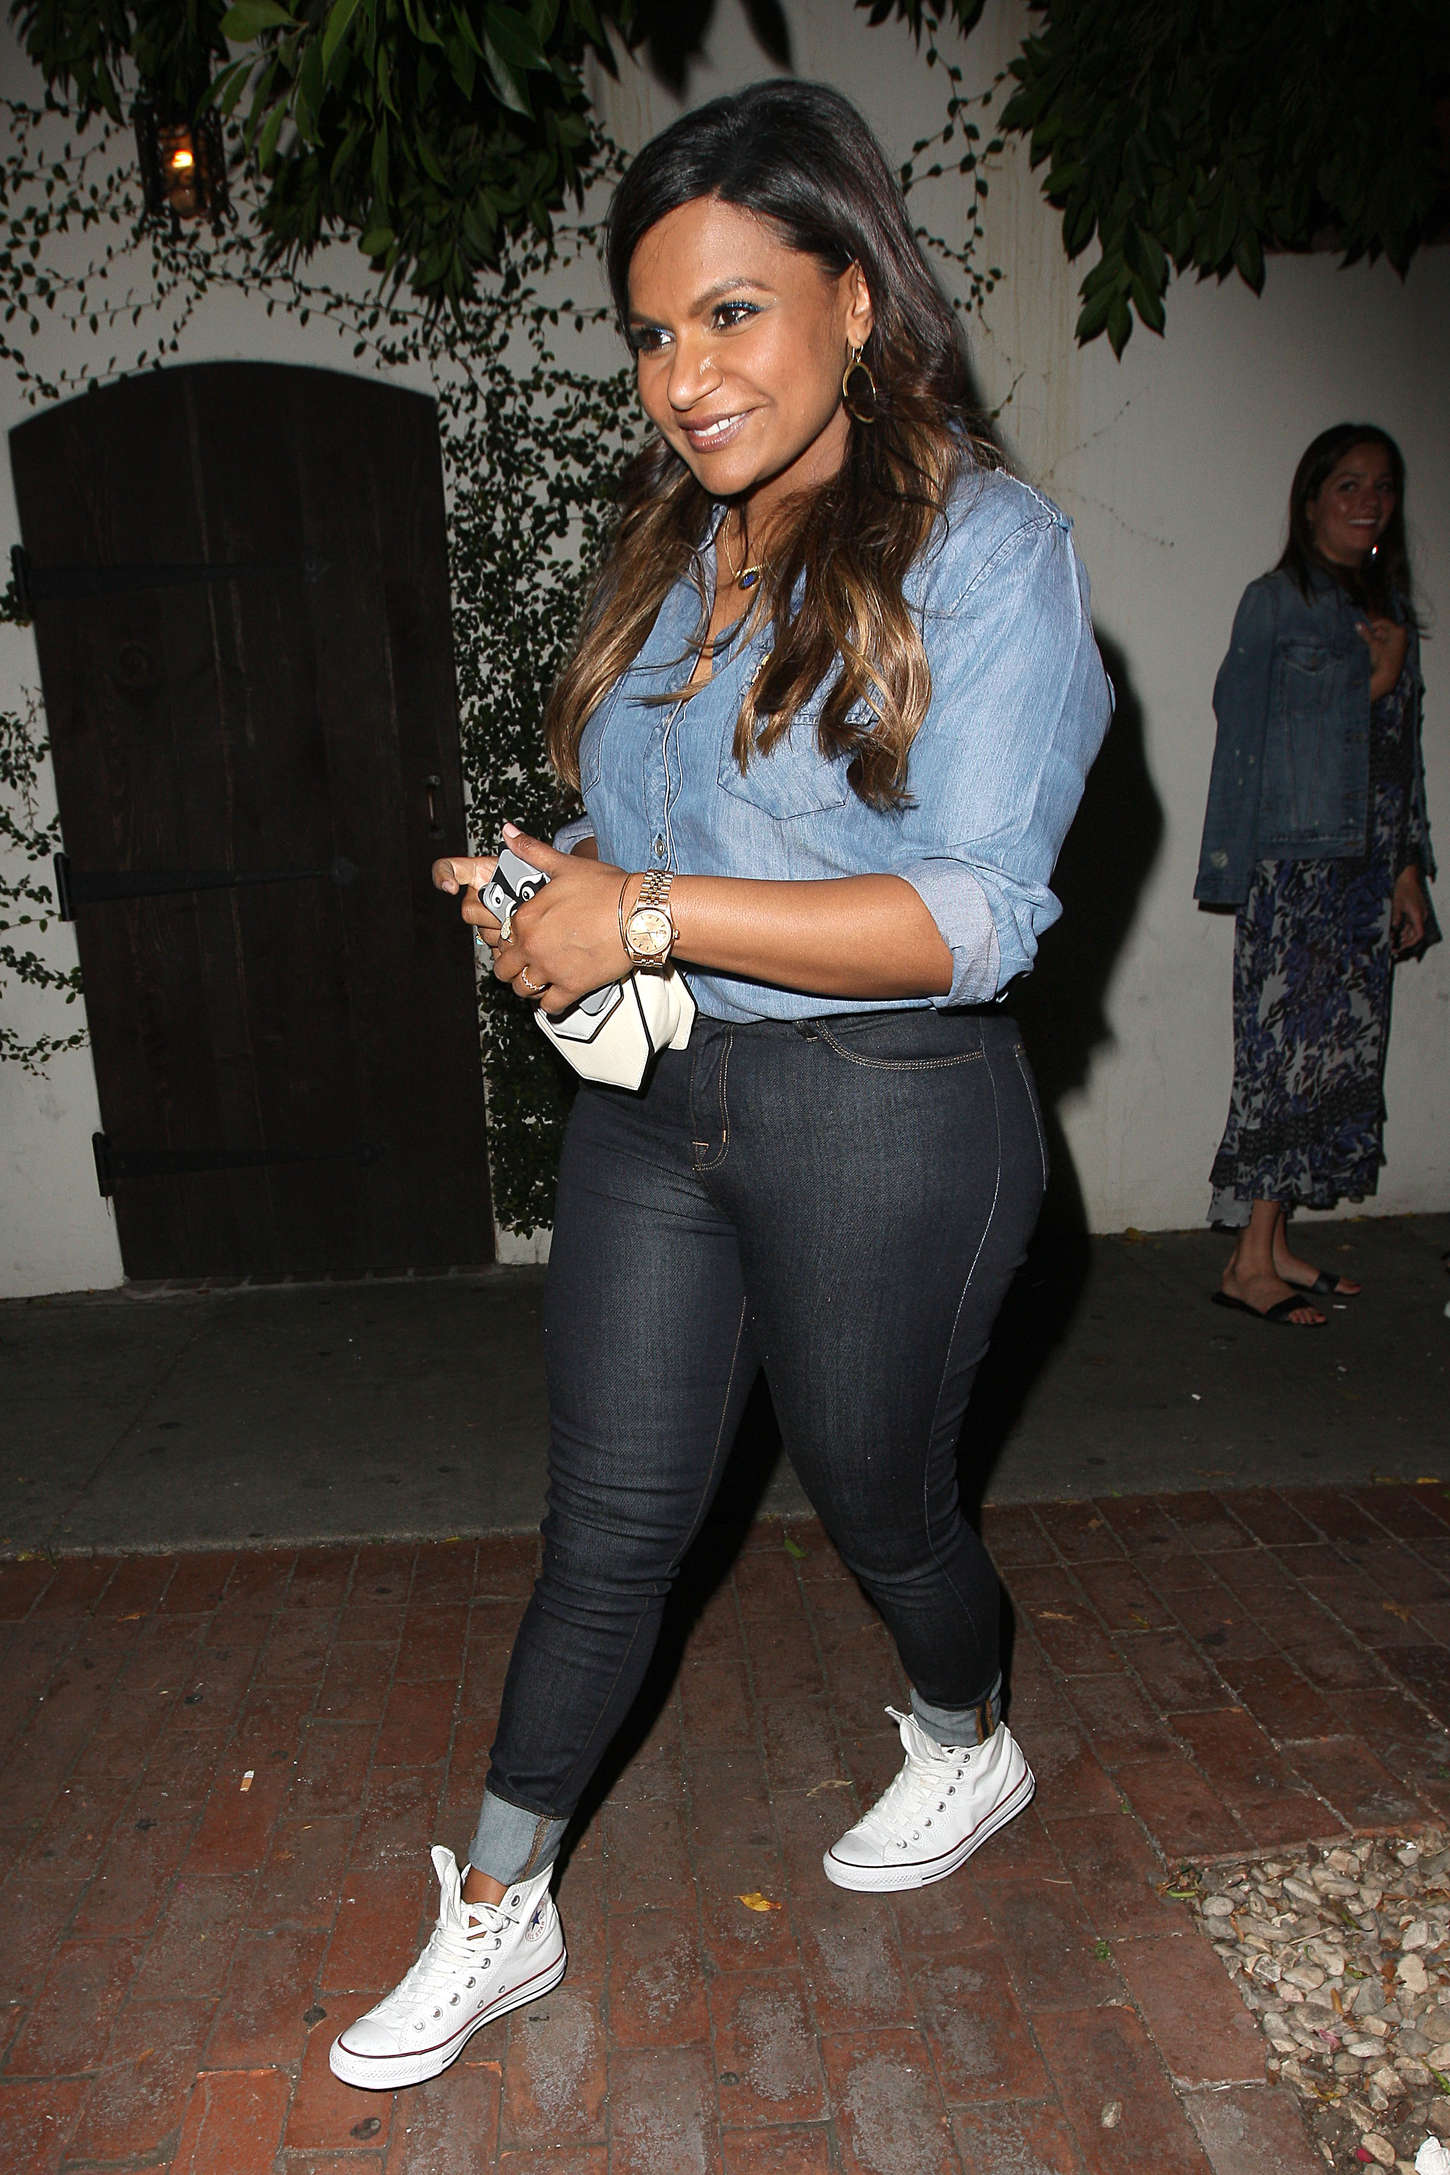 Mindy Kaling Leaving AOC in West Hollywood